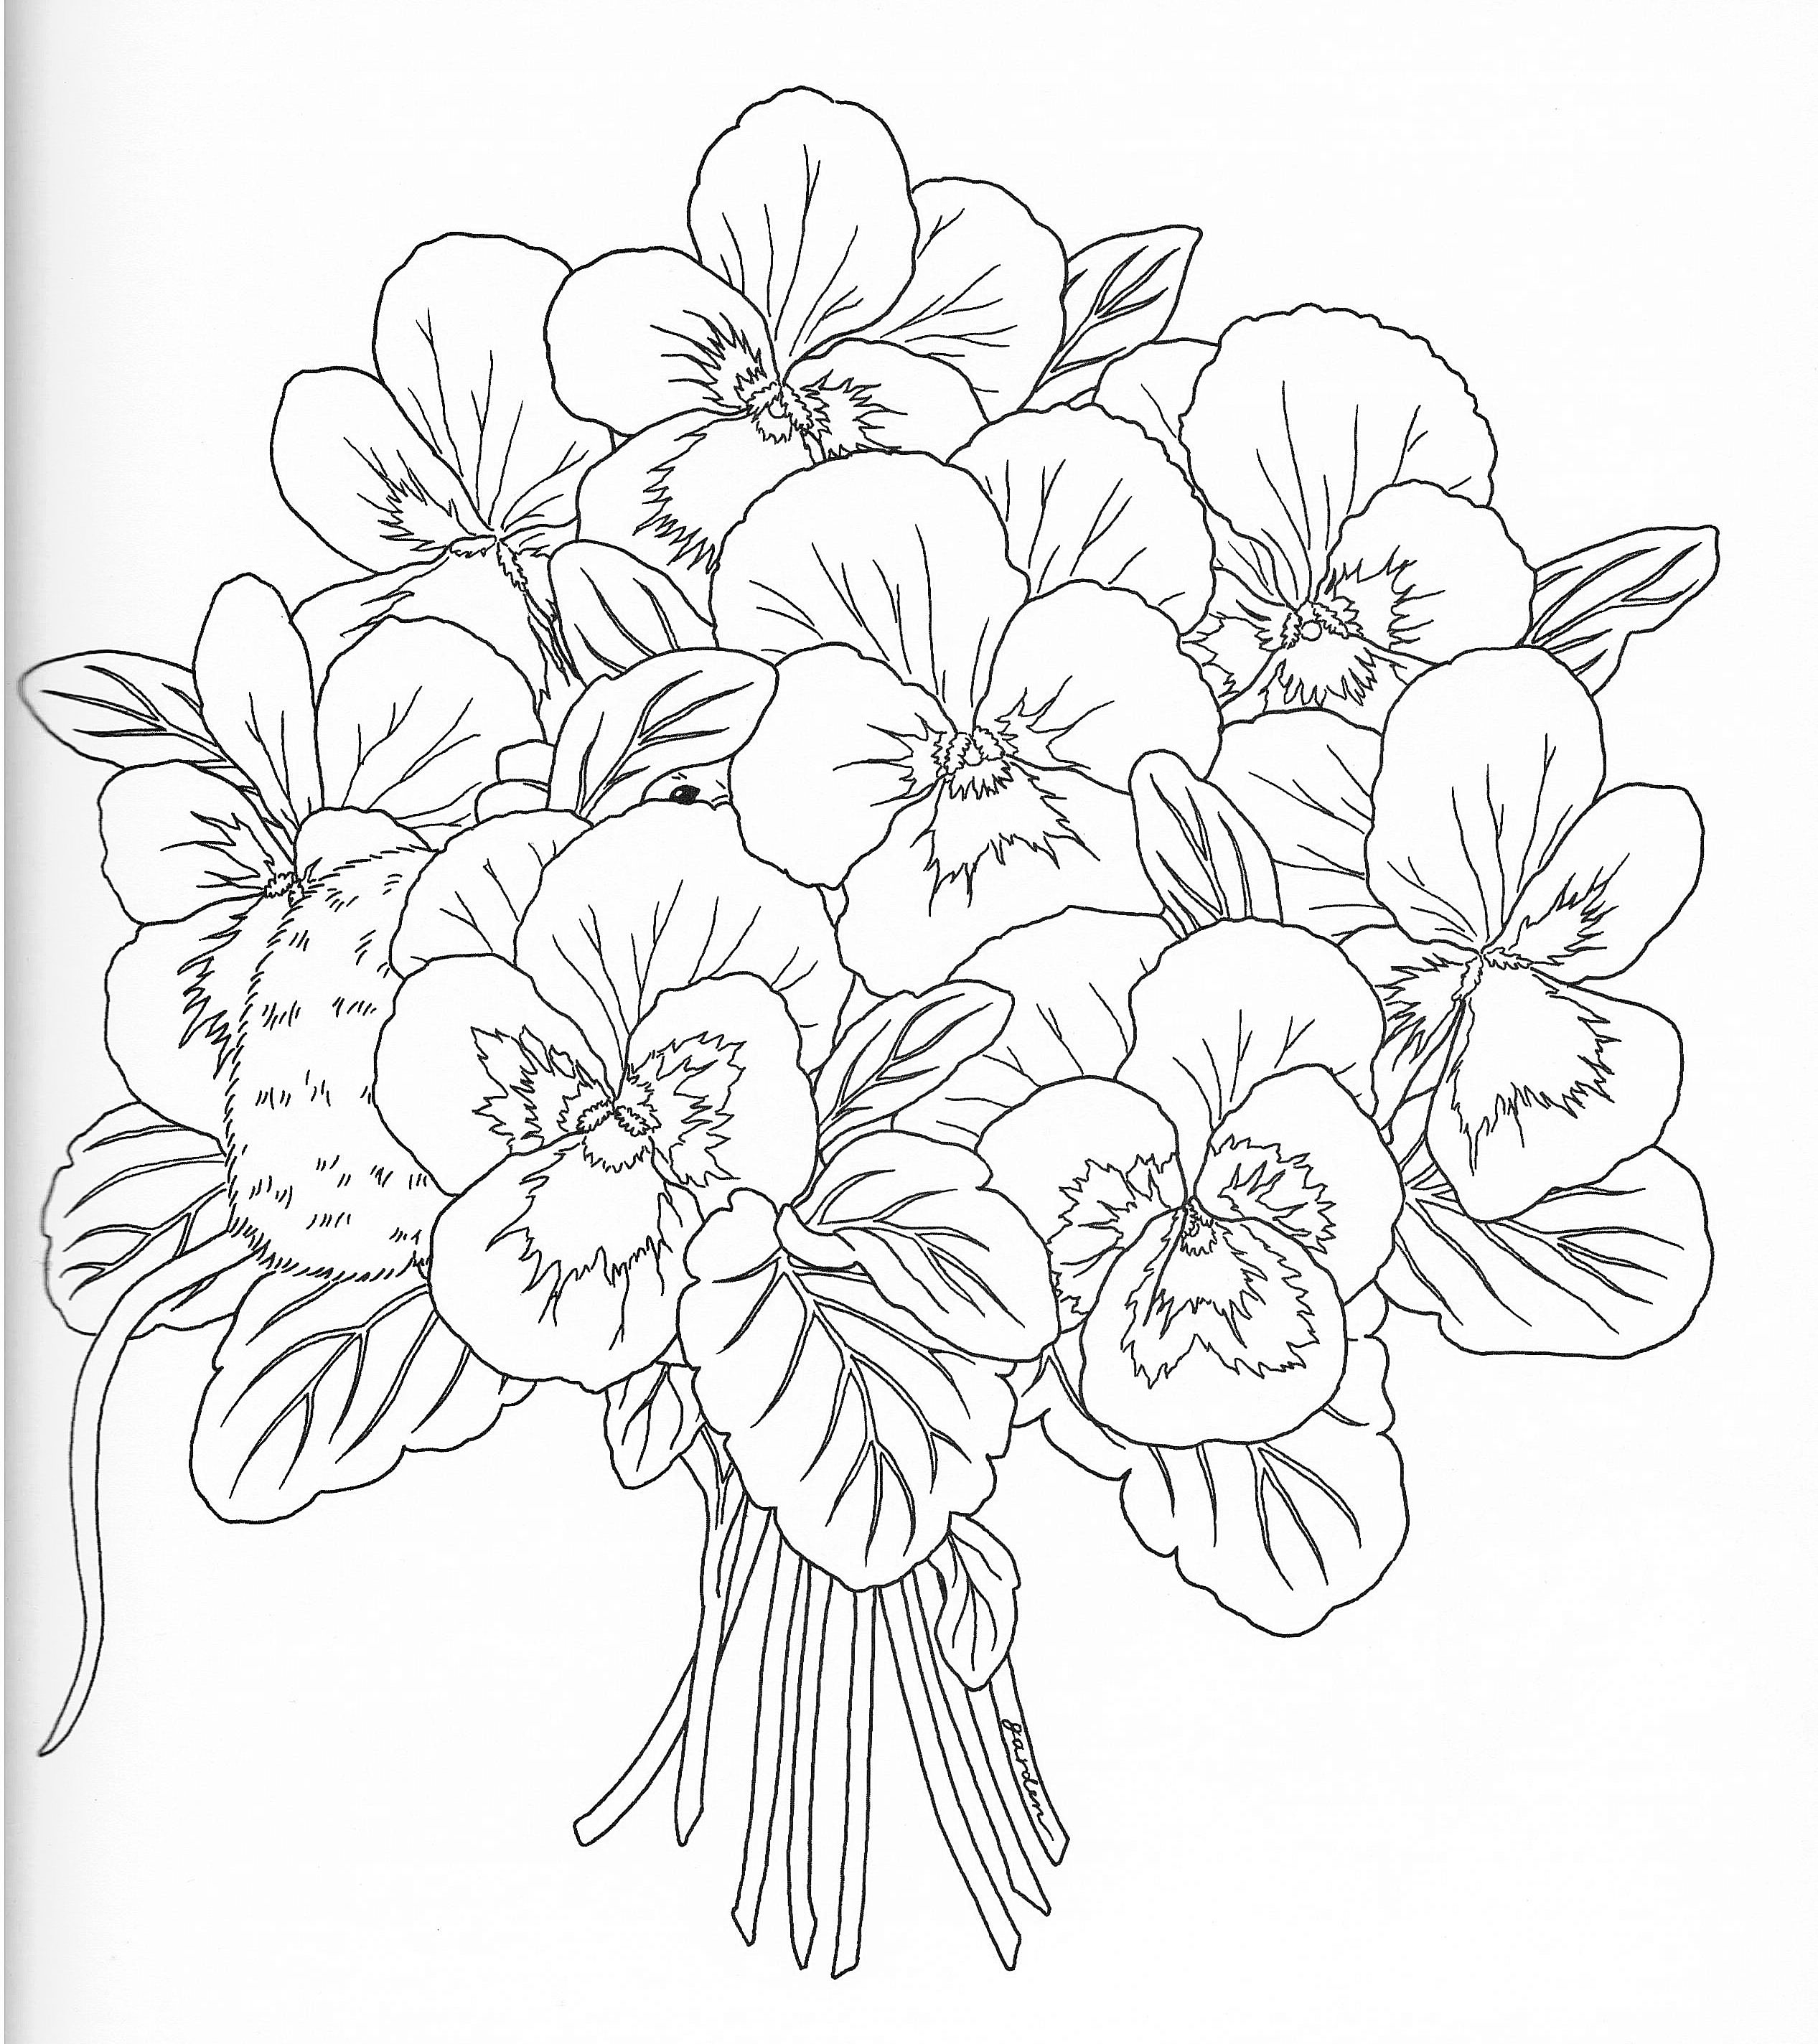 Harmony Of Nature Adult Coloring book Pg 12 | Color pages, Stencils ...